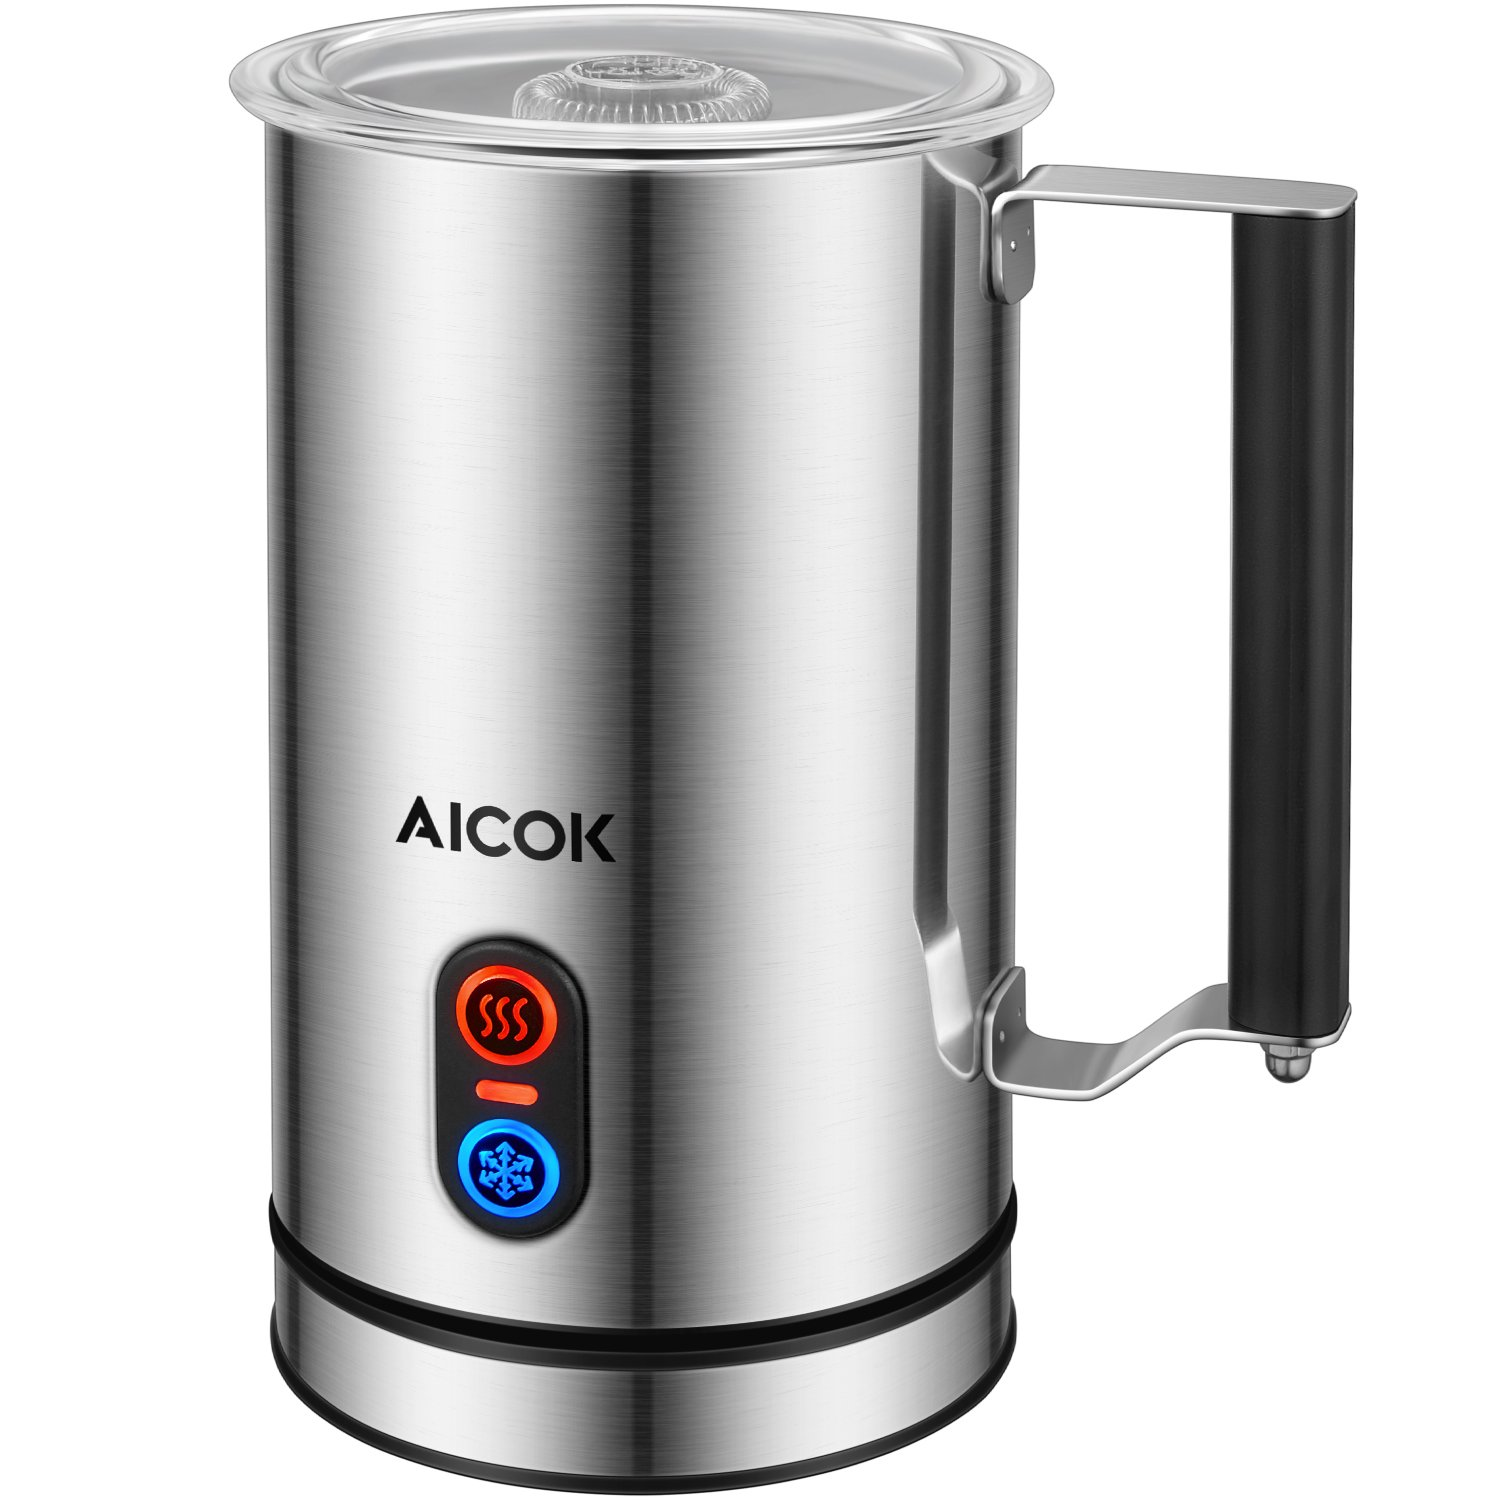 Milk Frother Aicok, Electric Milk Steamer with Hot or Cold Milk Foaming Functions, Stainless Steel, Strix Controller, Non-Stick Coating, Silent Operation, Milk Warmer, for Making Latte, Cappuccino